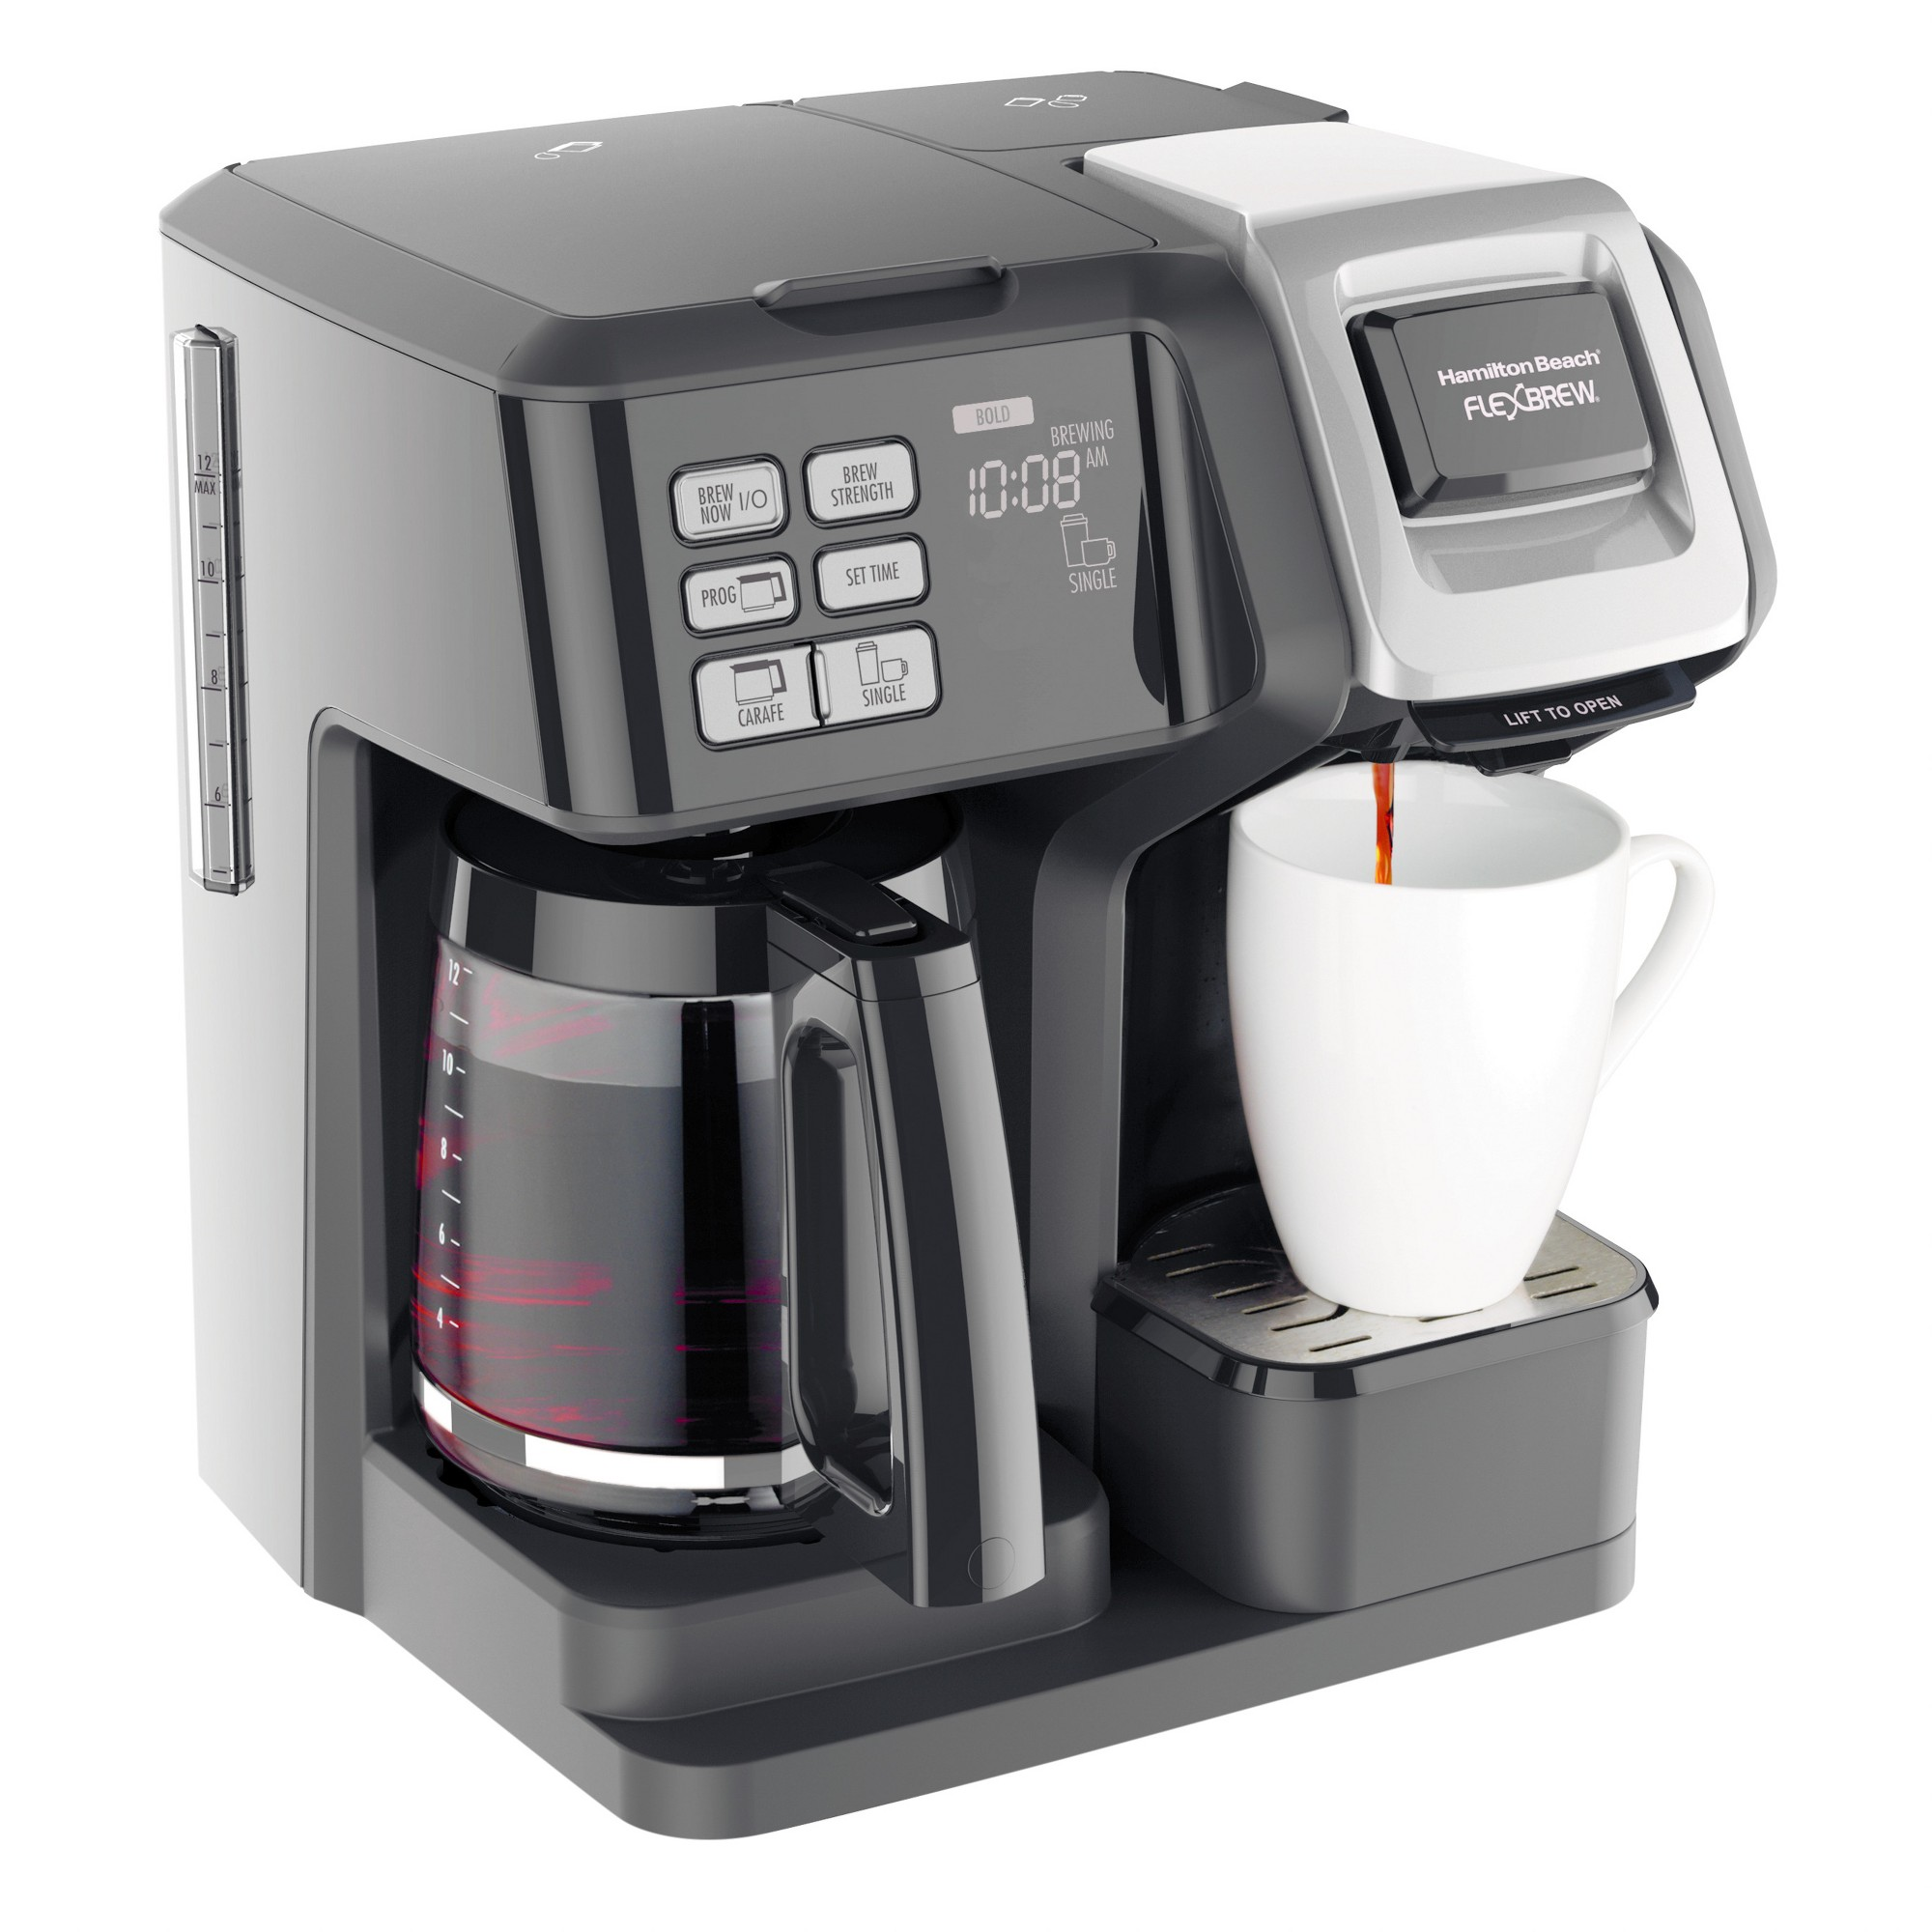 Hamilton Beach 2 Way Flex Brew 49976, Black Coffee maker